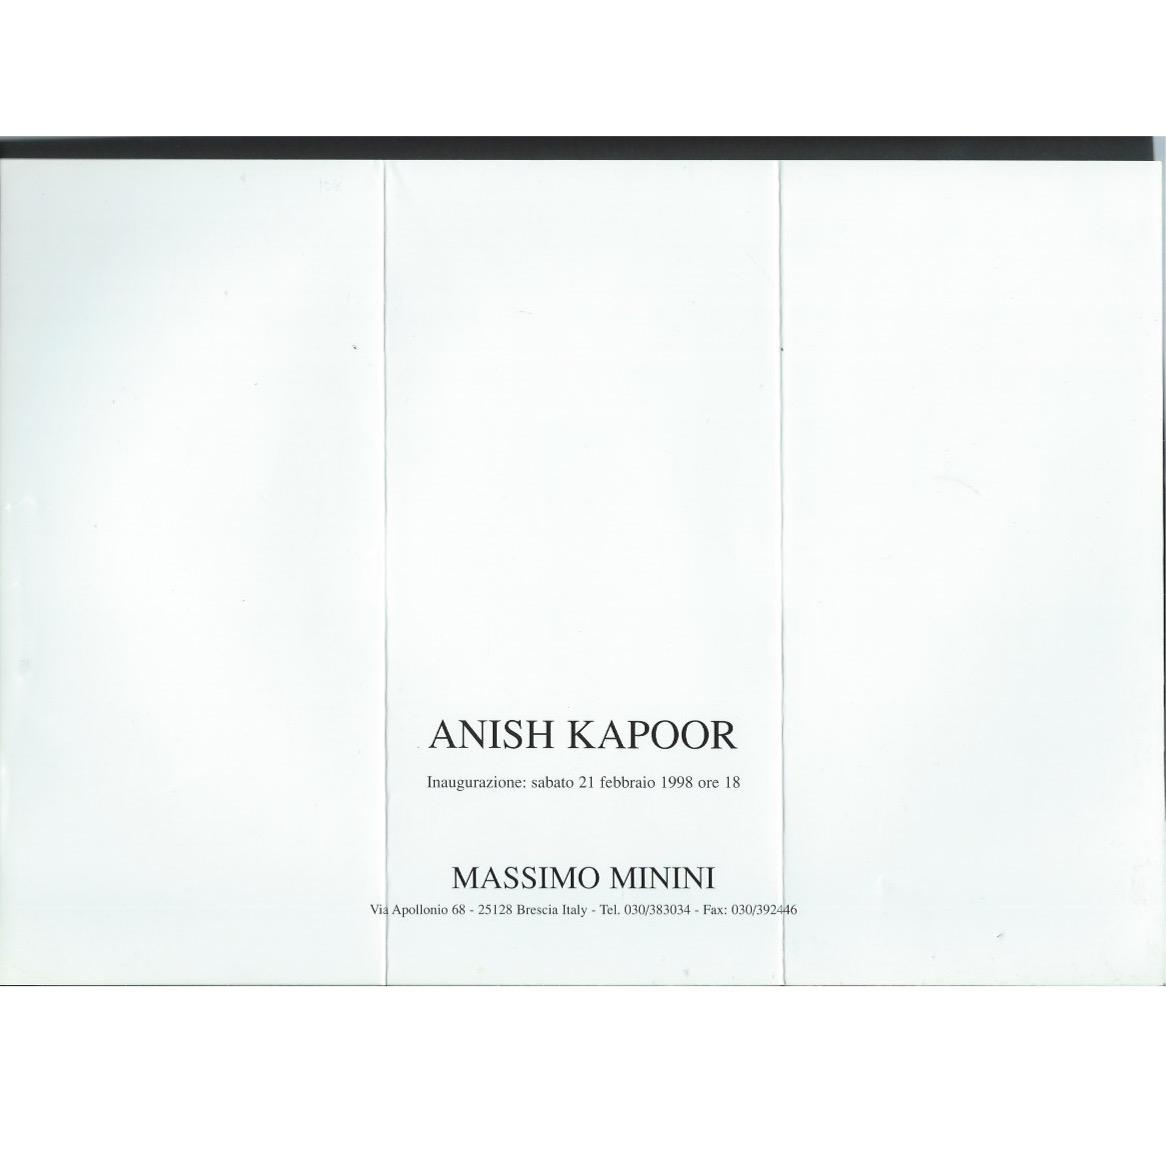 Anish_Kapoor__a_collection_of_6_announcements_Kapoor_Anish_Très_bon